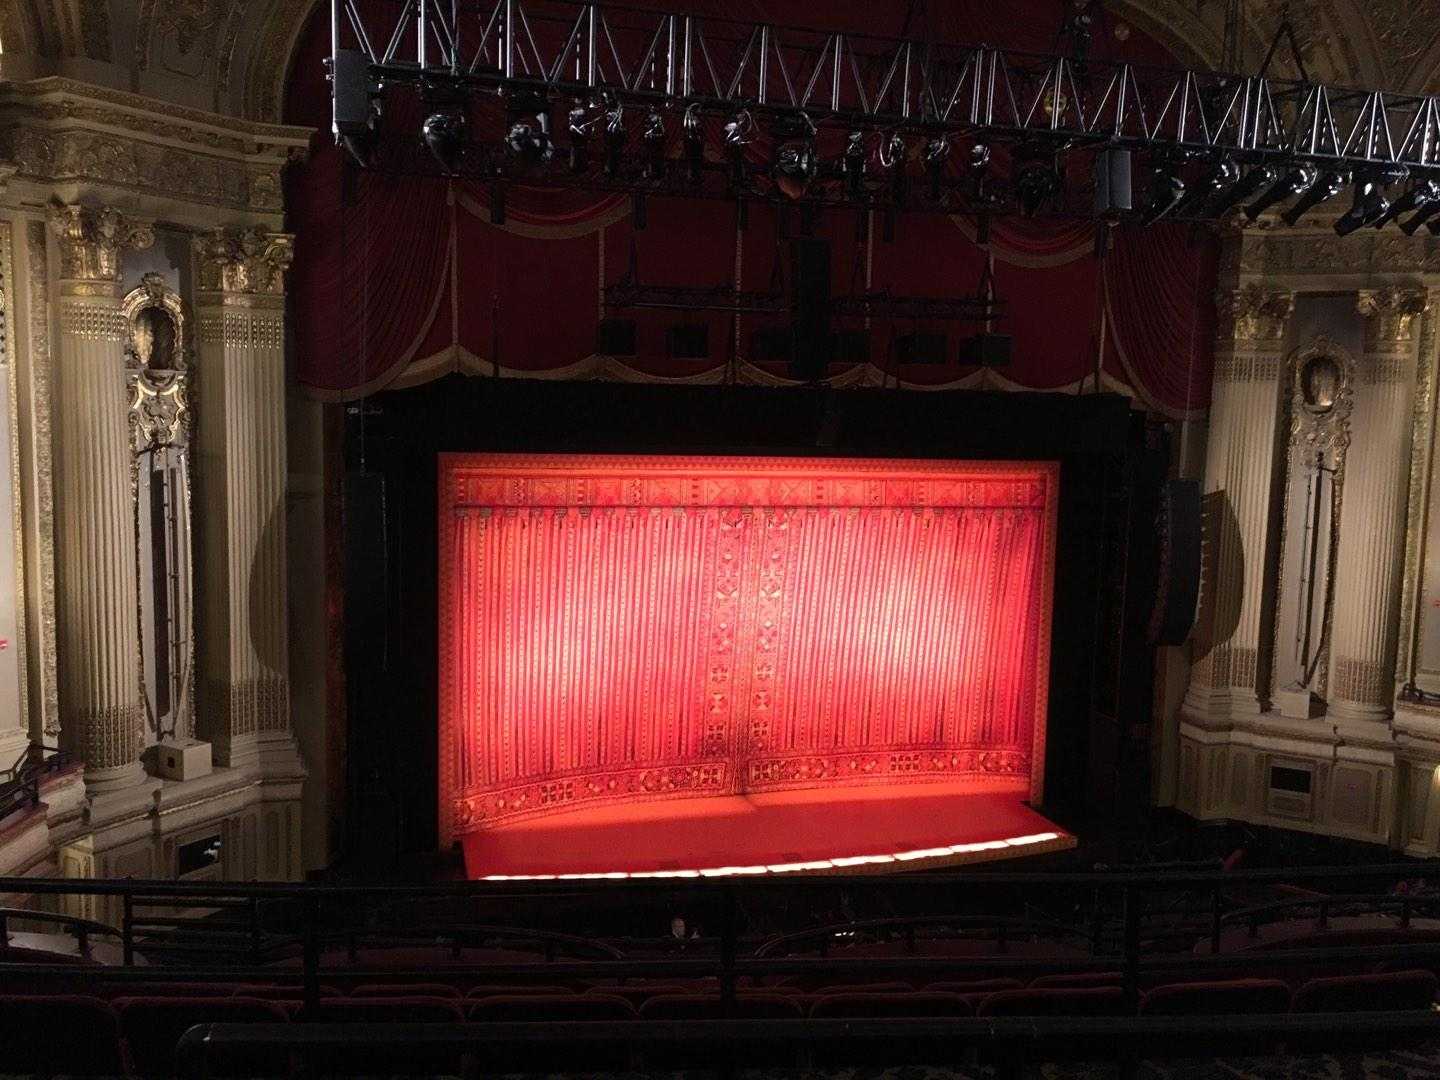 Boston Opera House Section MEZZLC Row C Seat 125